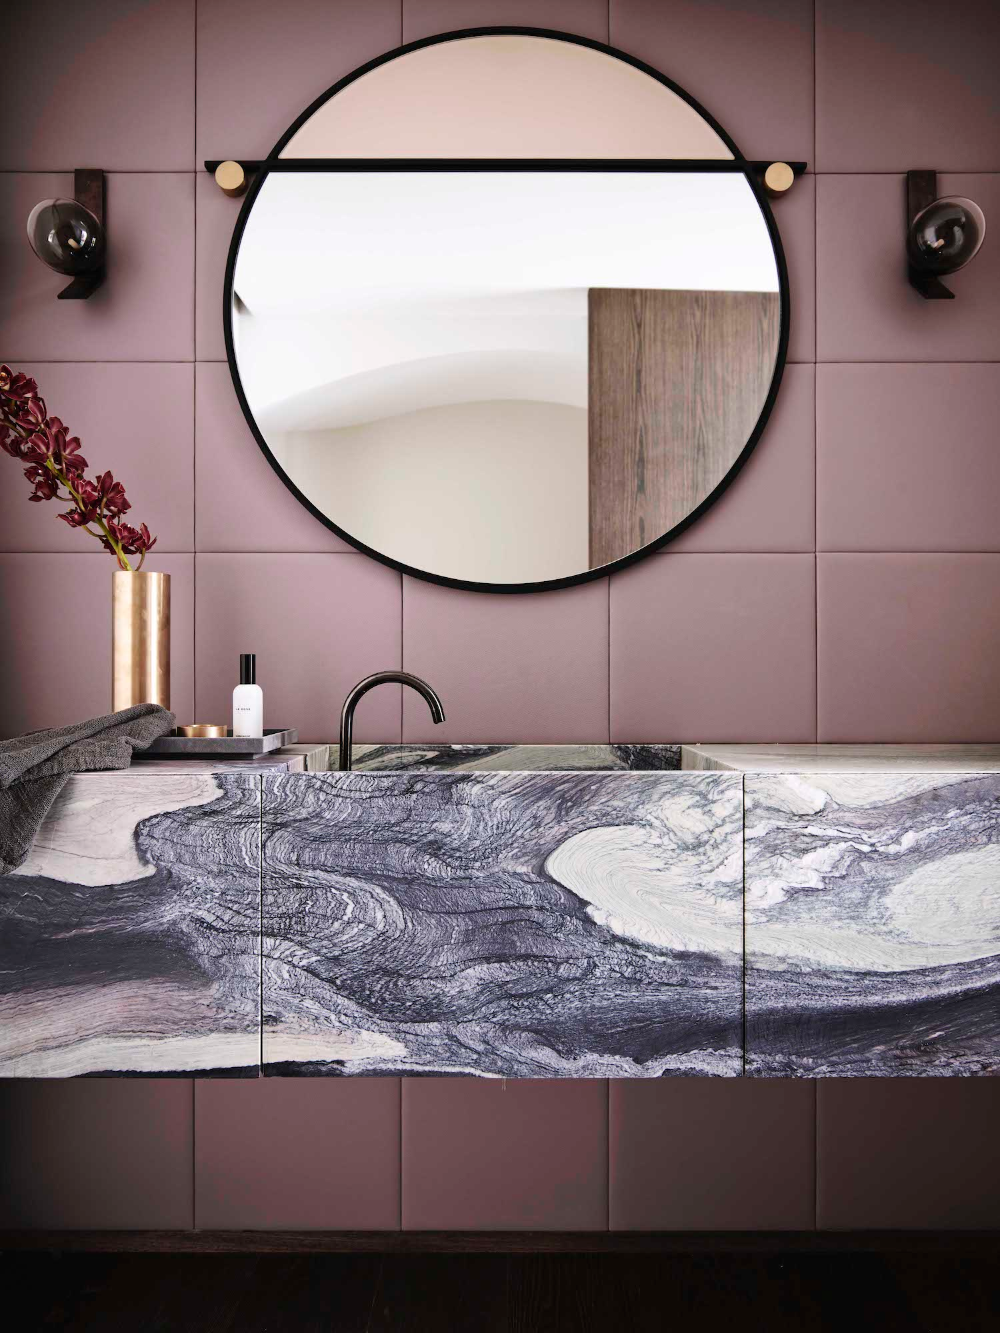 Photo of Bathroom | Sydney House Bathroom by Decus Interiors | Est Living Free Digital Design Magazine